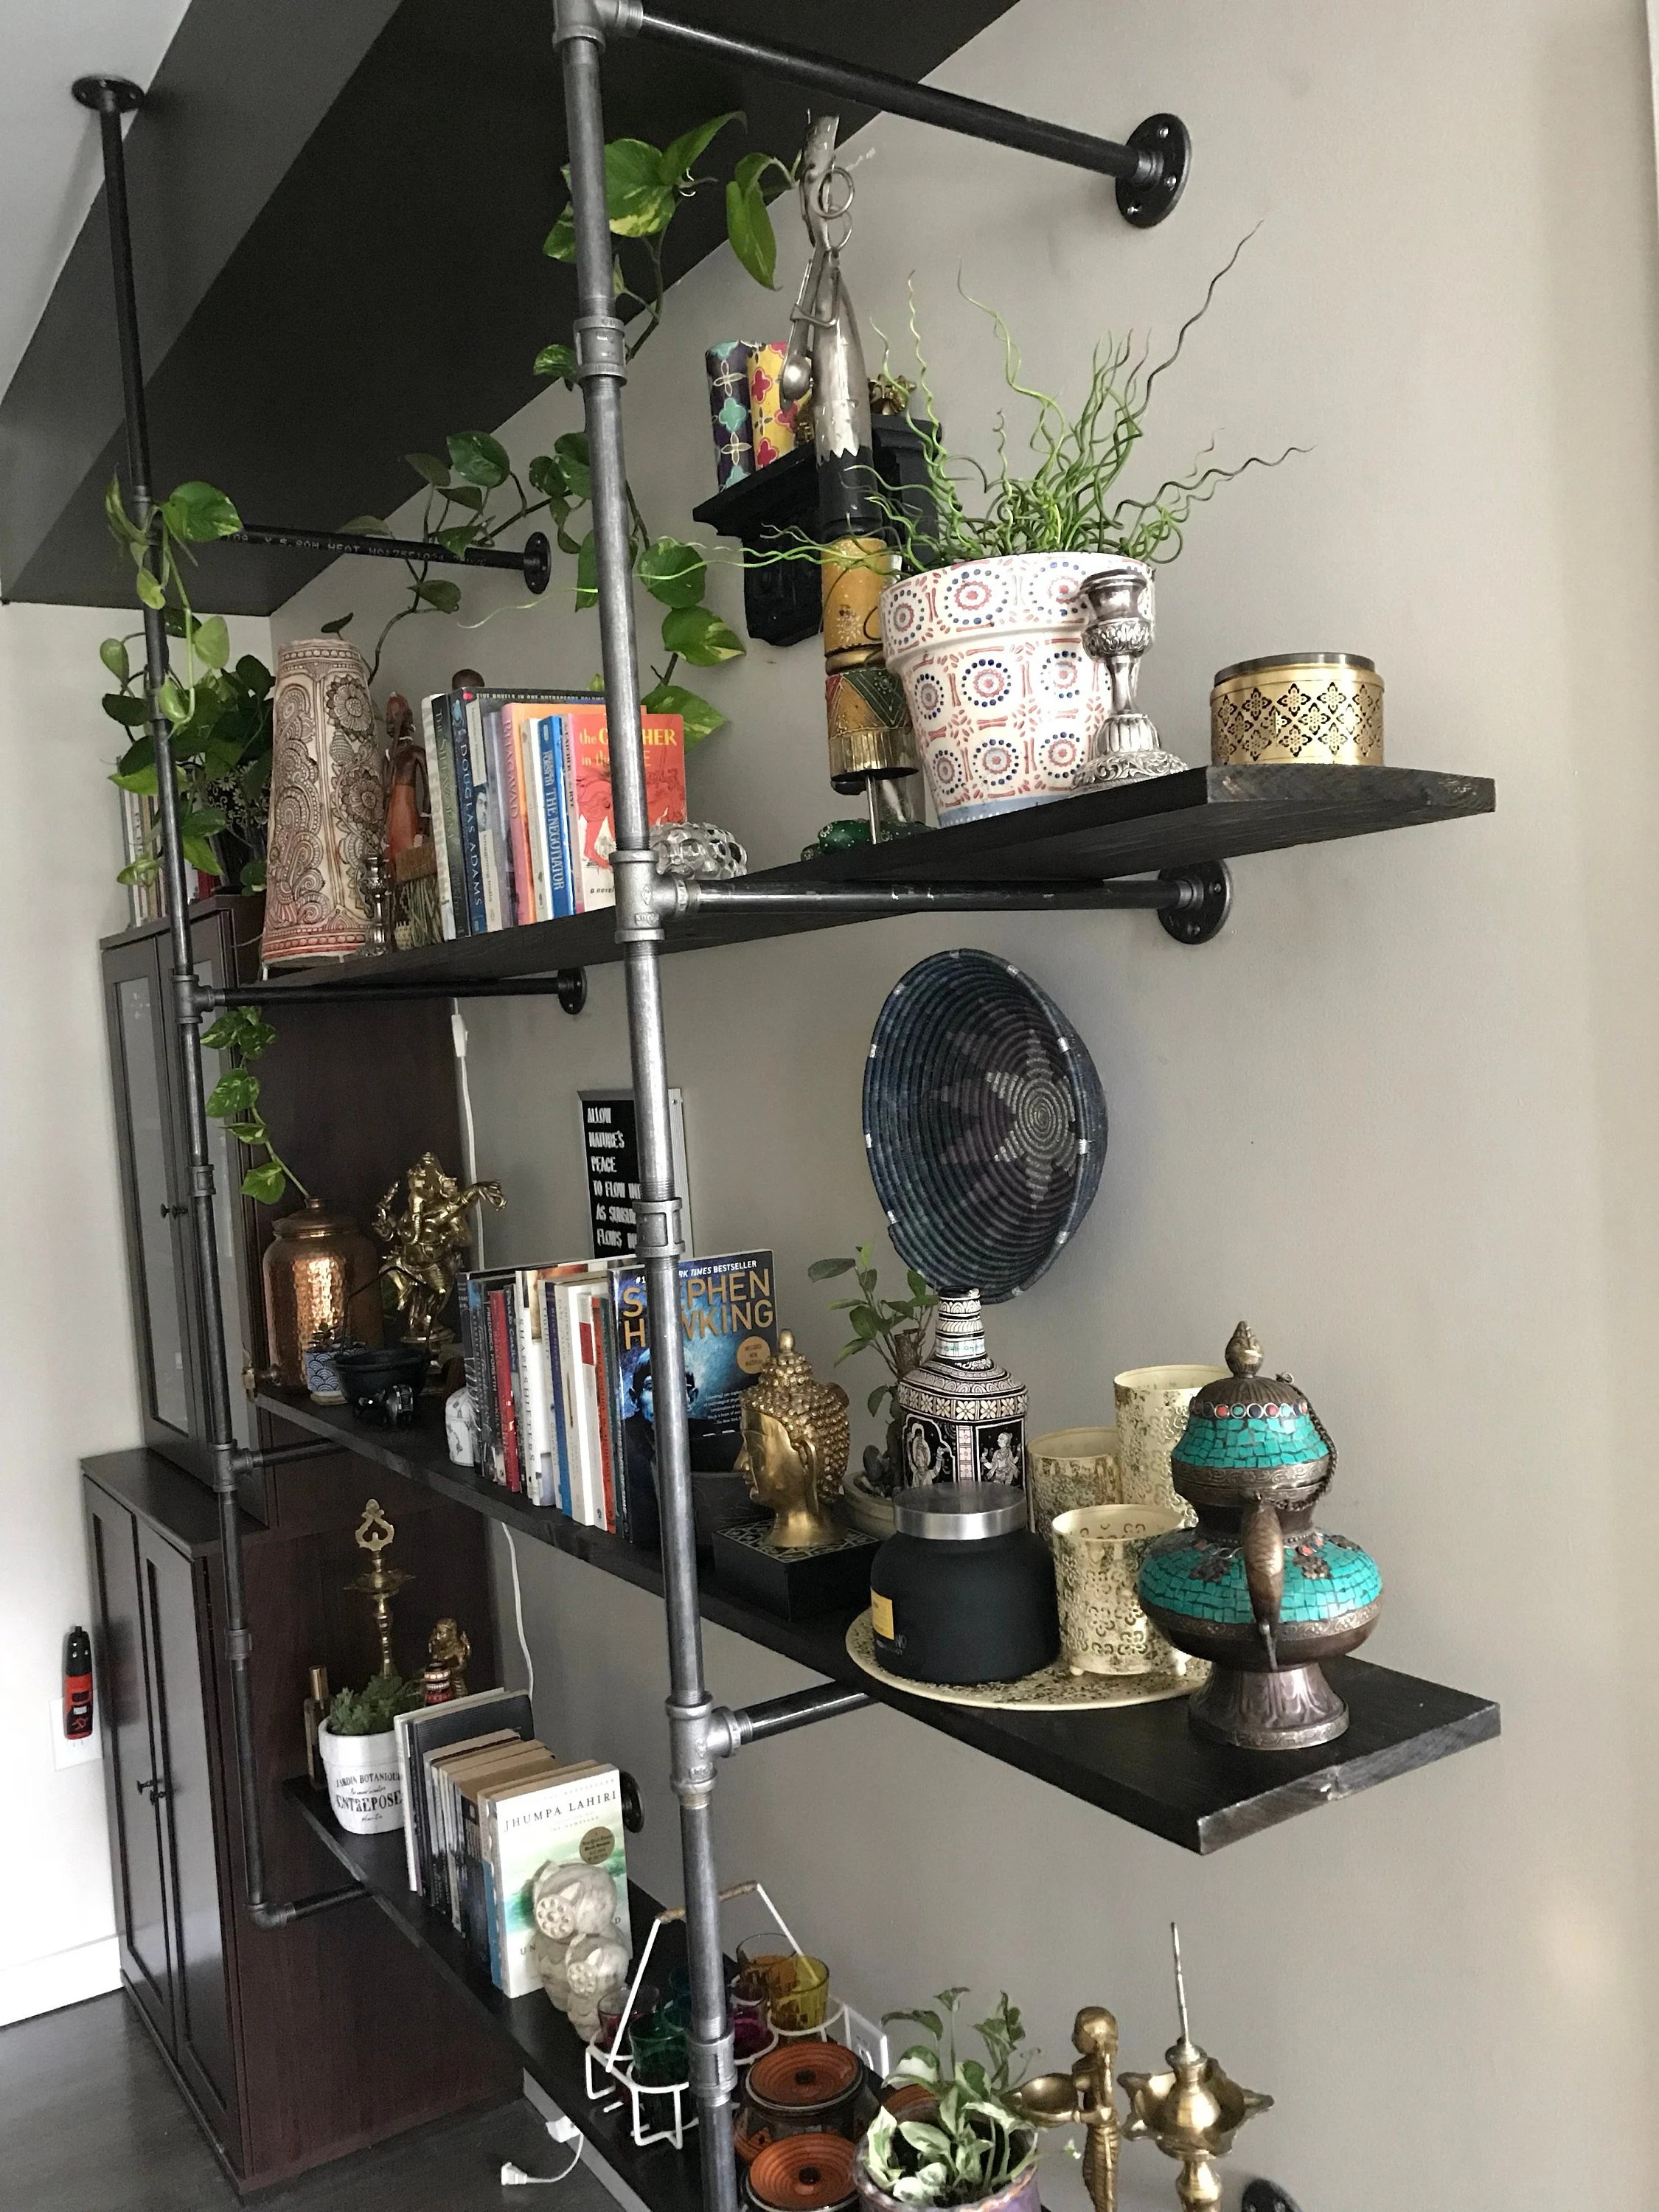 How To Clean Black Pipe For Shelving